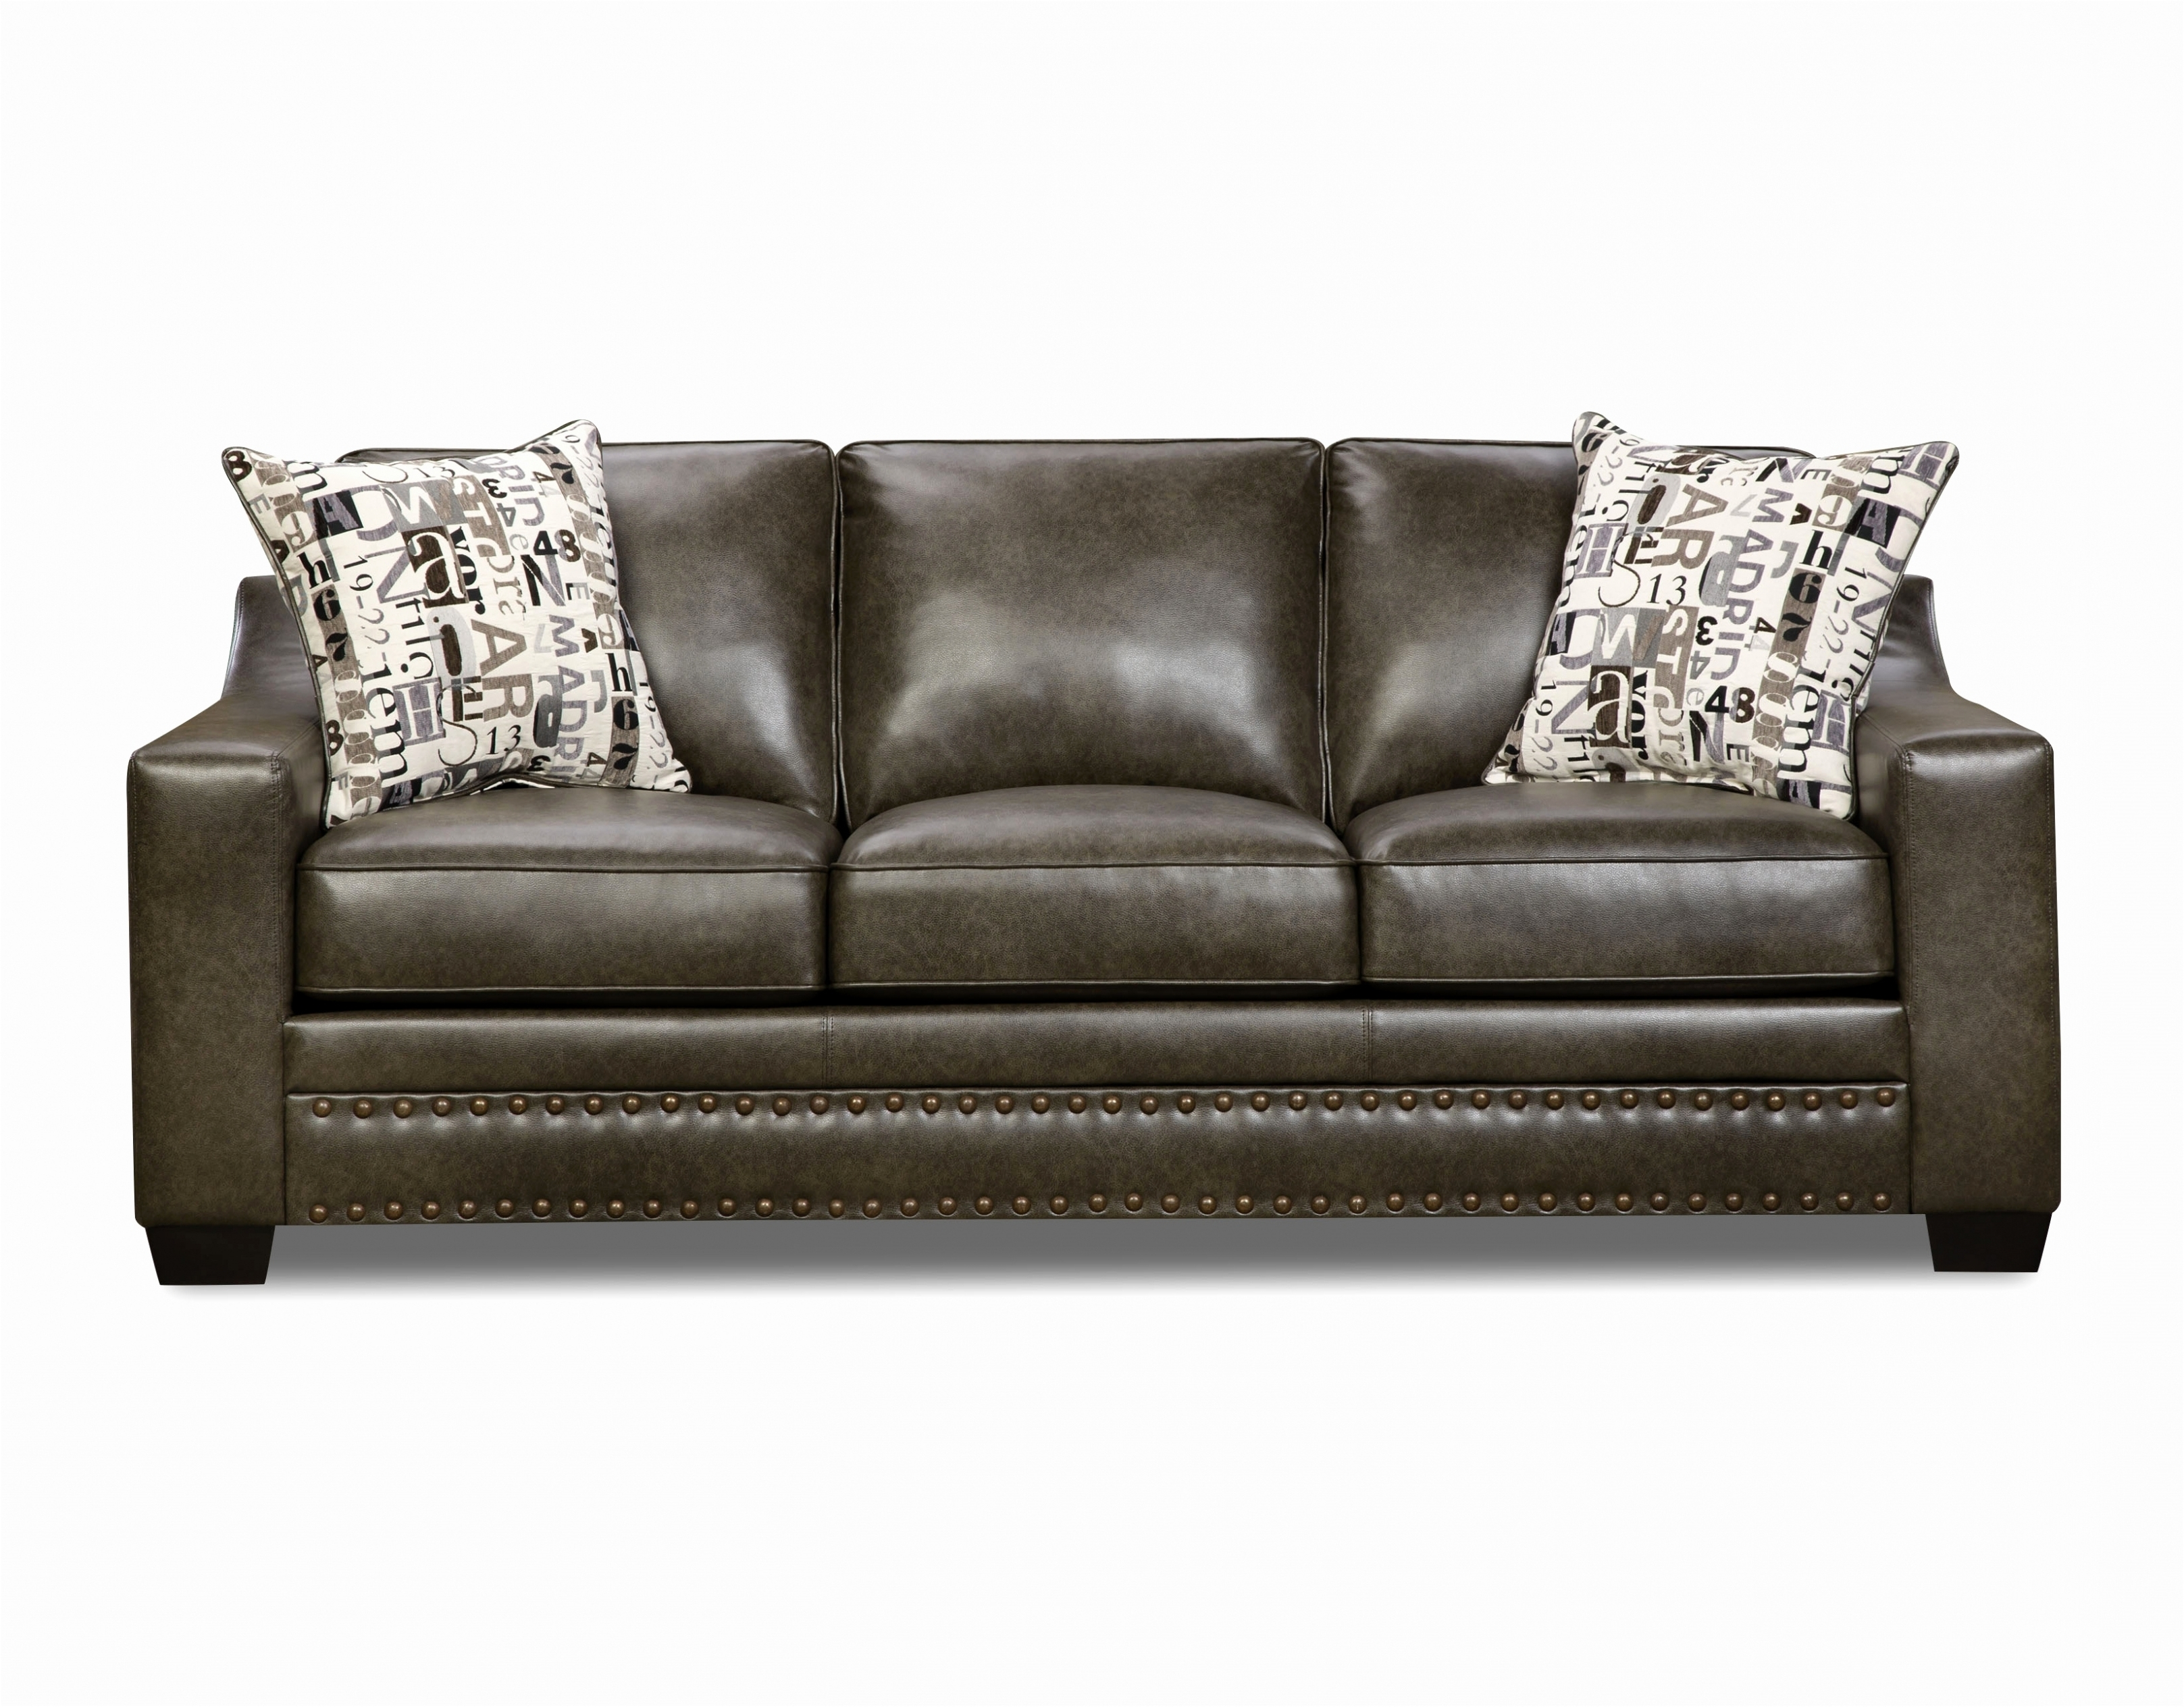 Sears Sectional Sofas Regarding Well Known Furniture ~ Fresh Sears Leather Sofa New – Intuisiblog Sofa Bed (View 12 of 20)